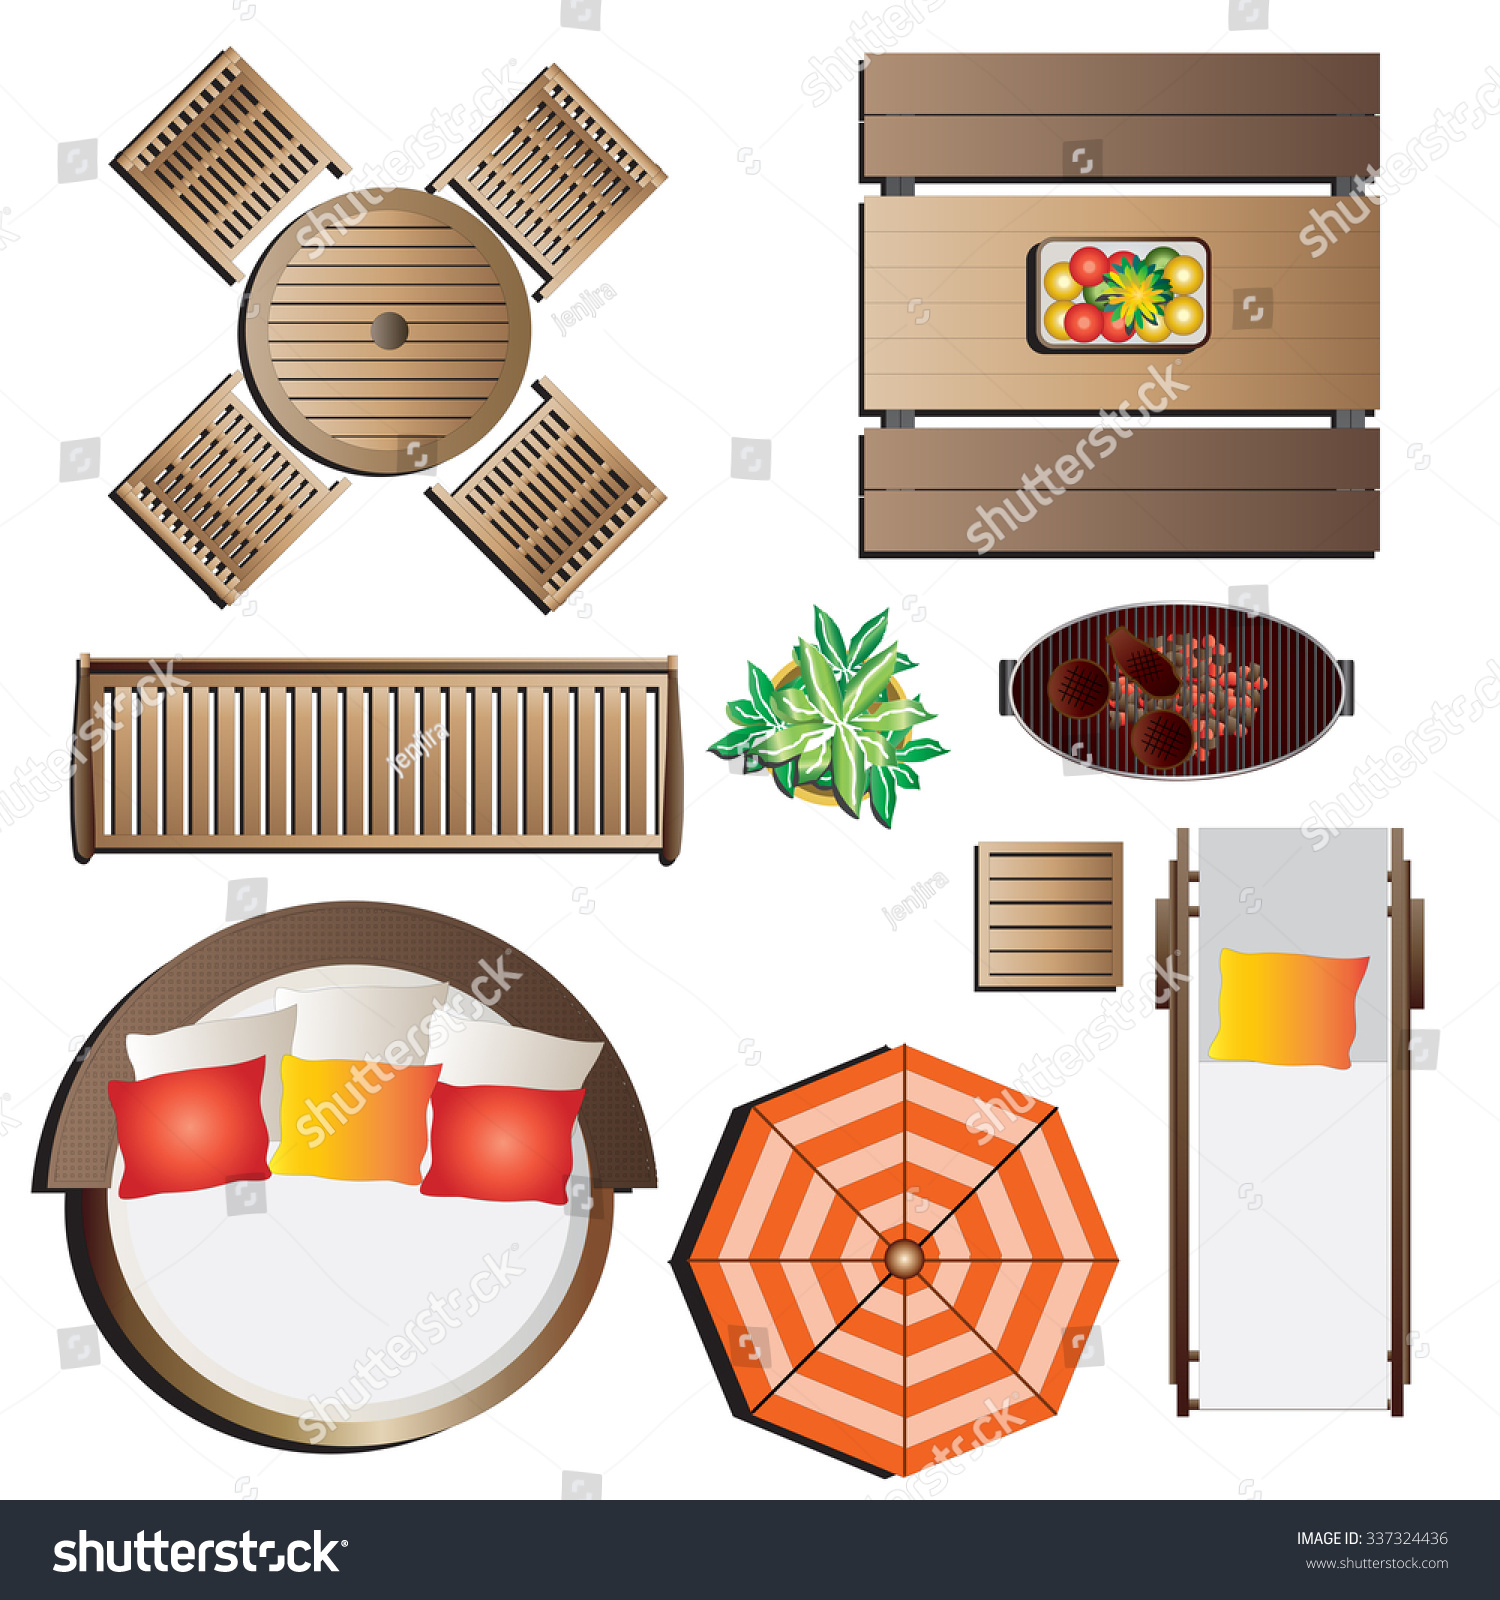 garden furniture top view psd 0 stock vector outdoor furniture top view set for